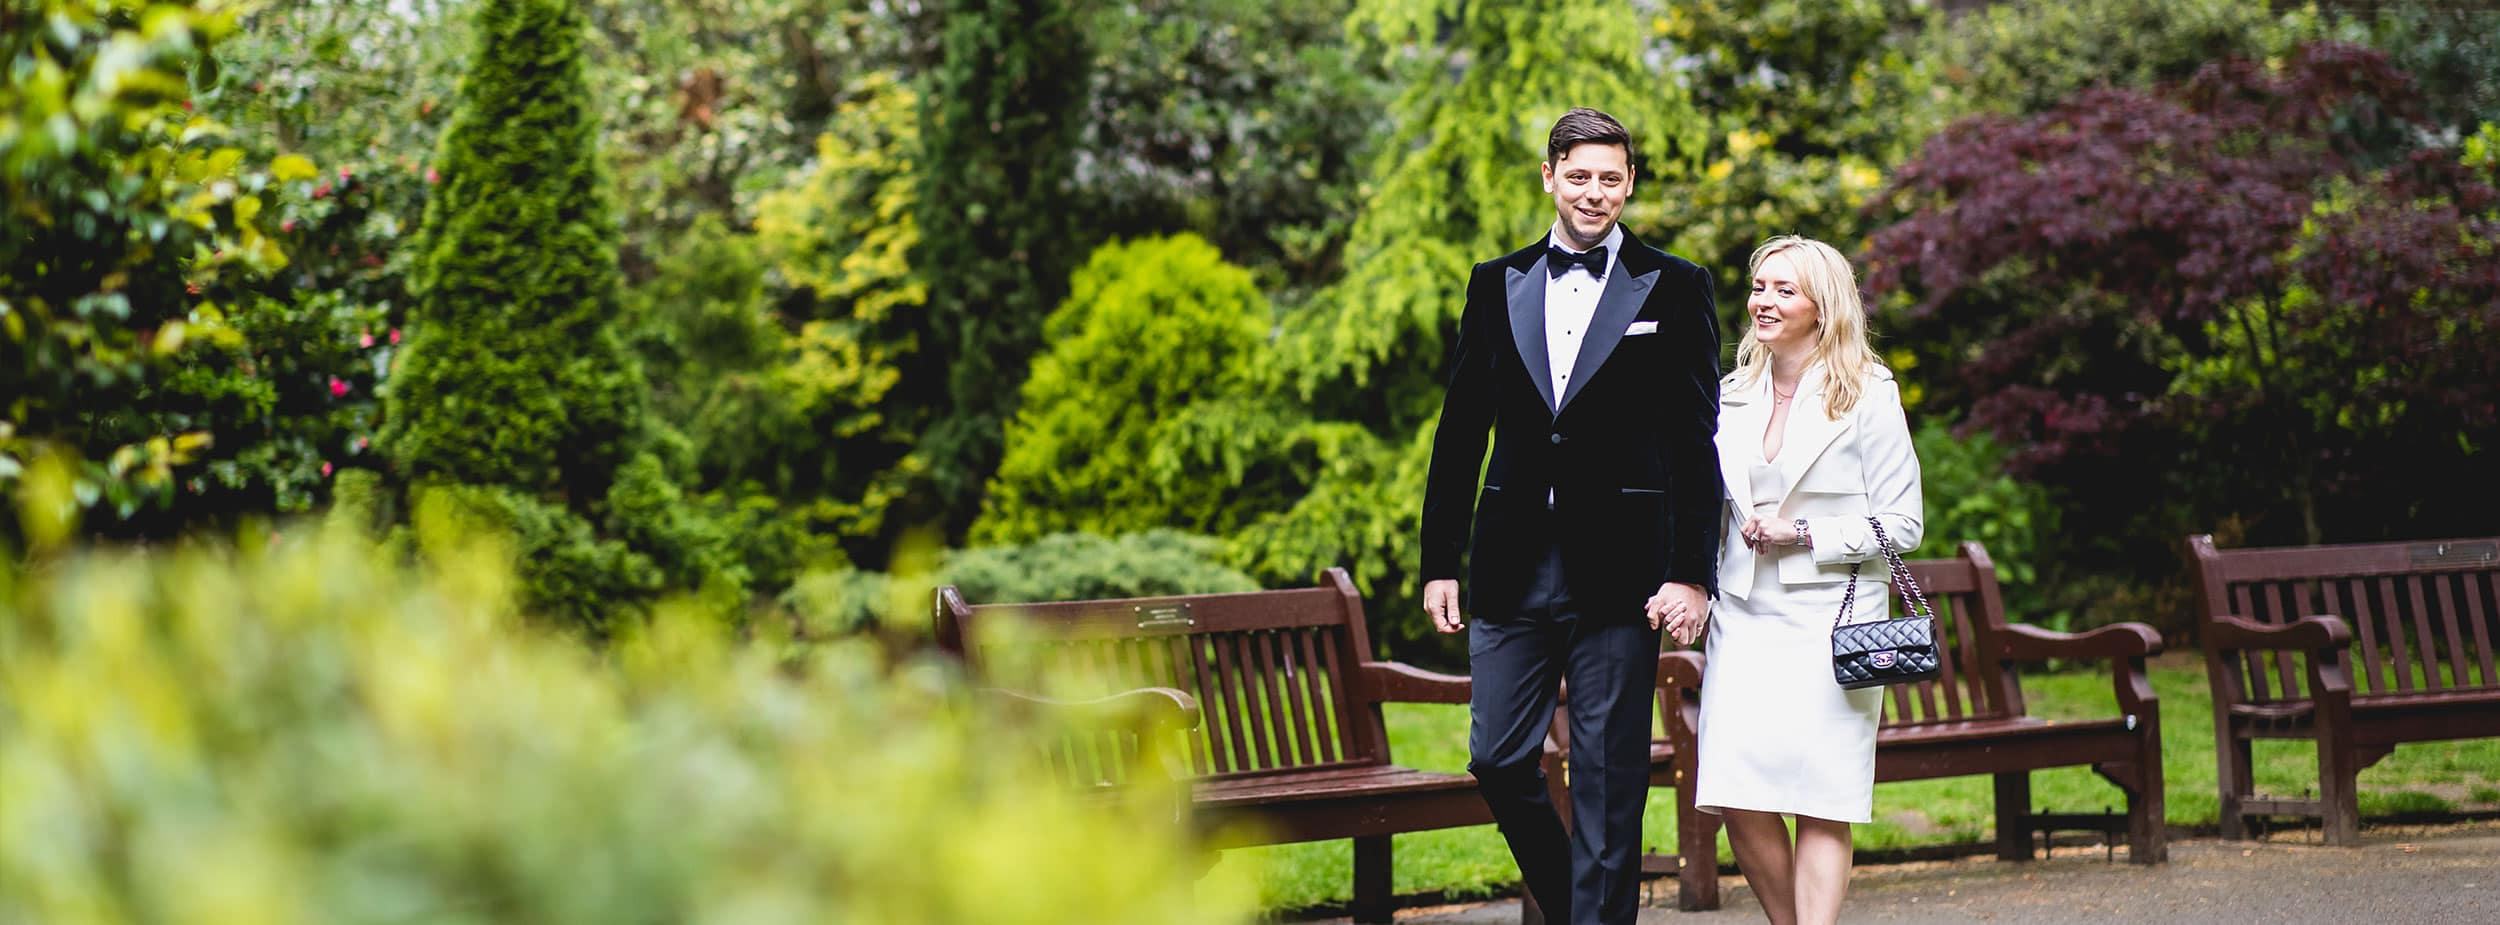 Registry Wedding Photographer Mayfair Library London